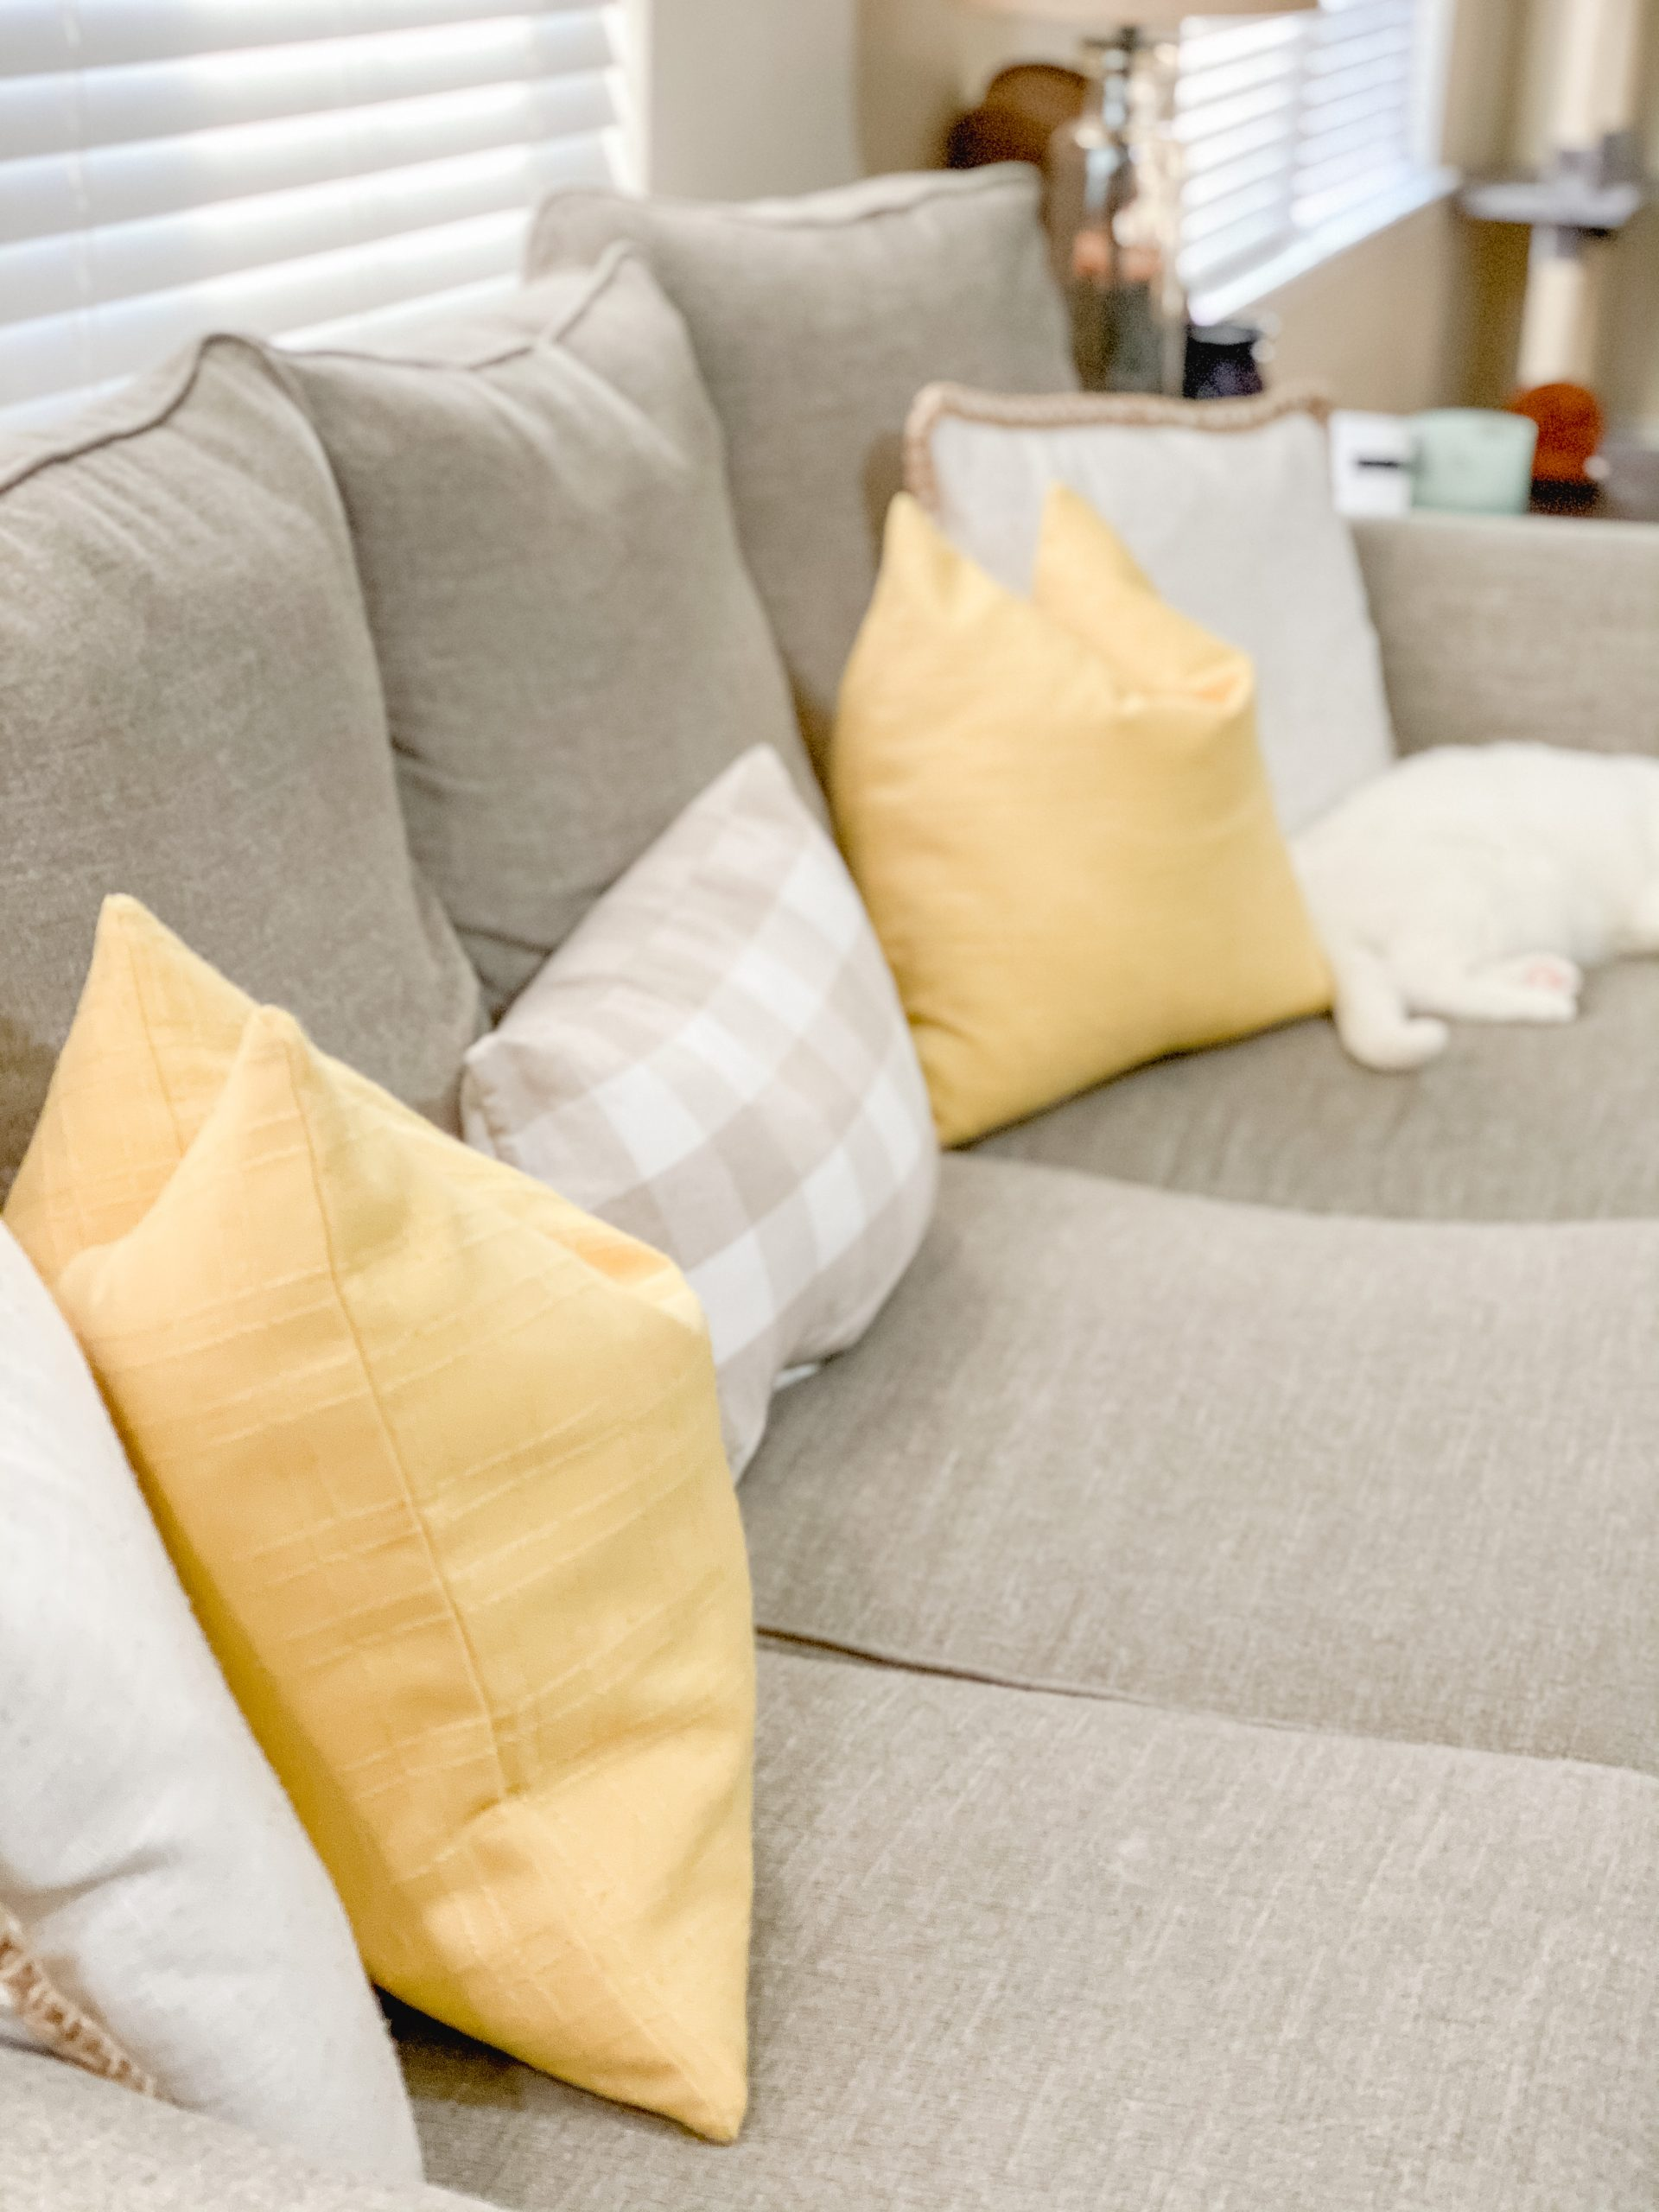 Spring decor in living room with yellow throw pillows.